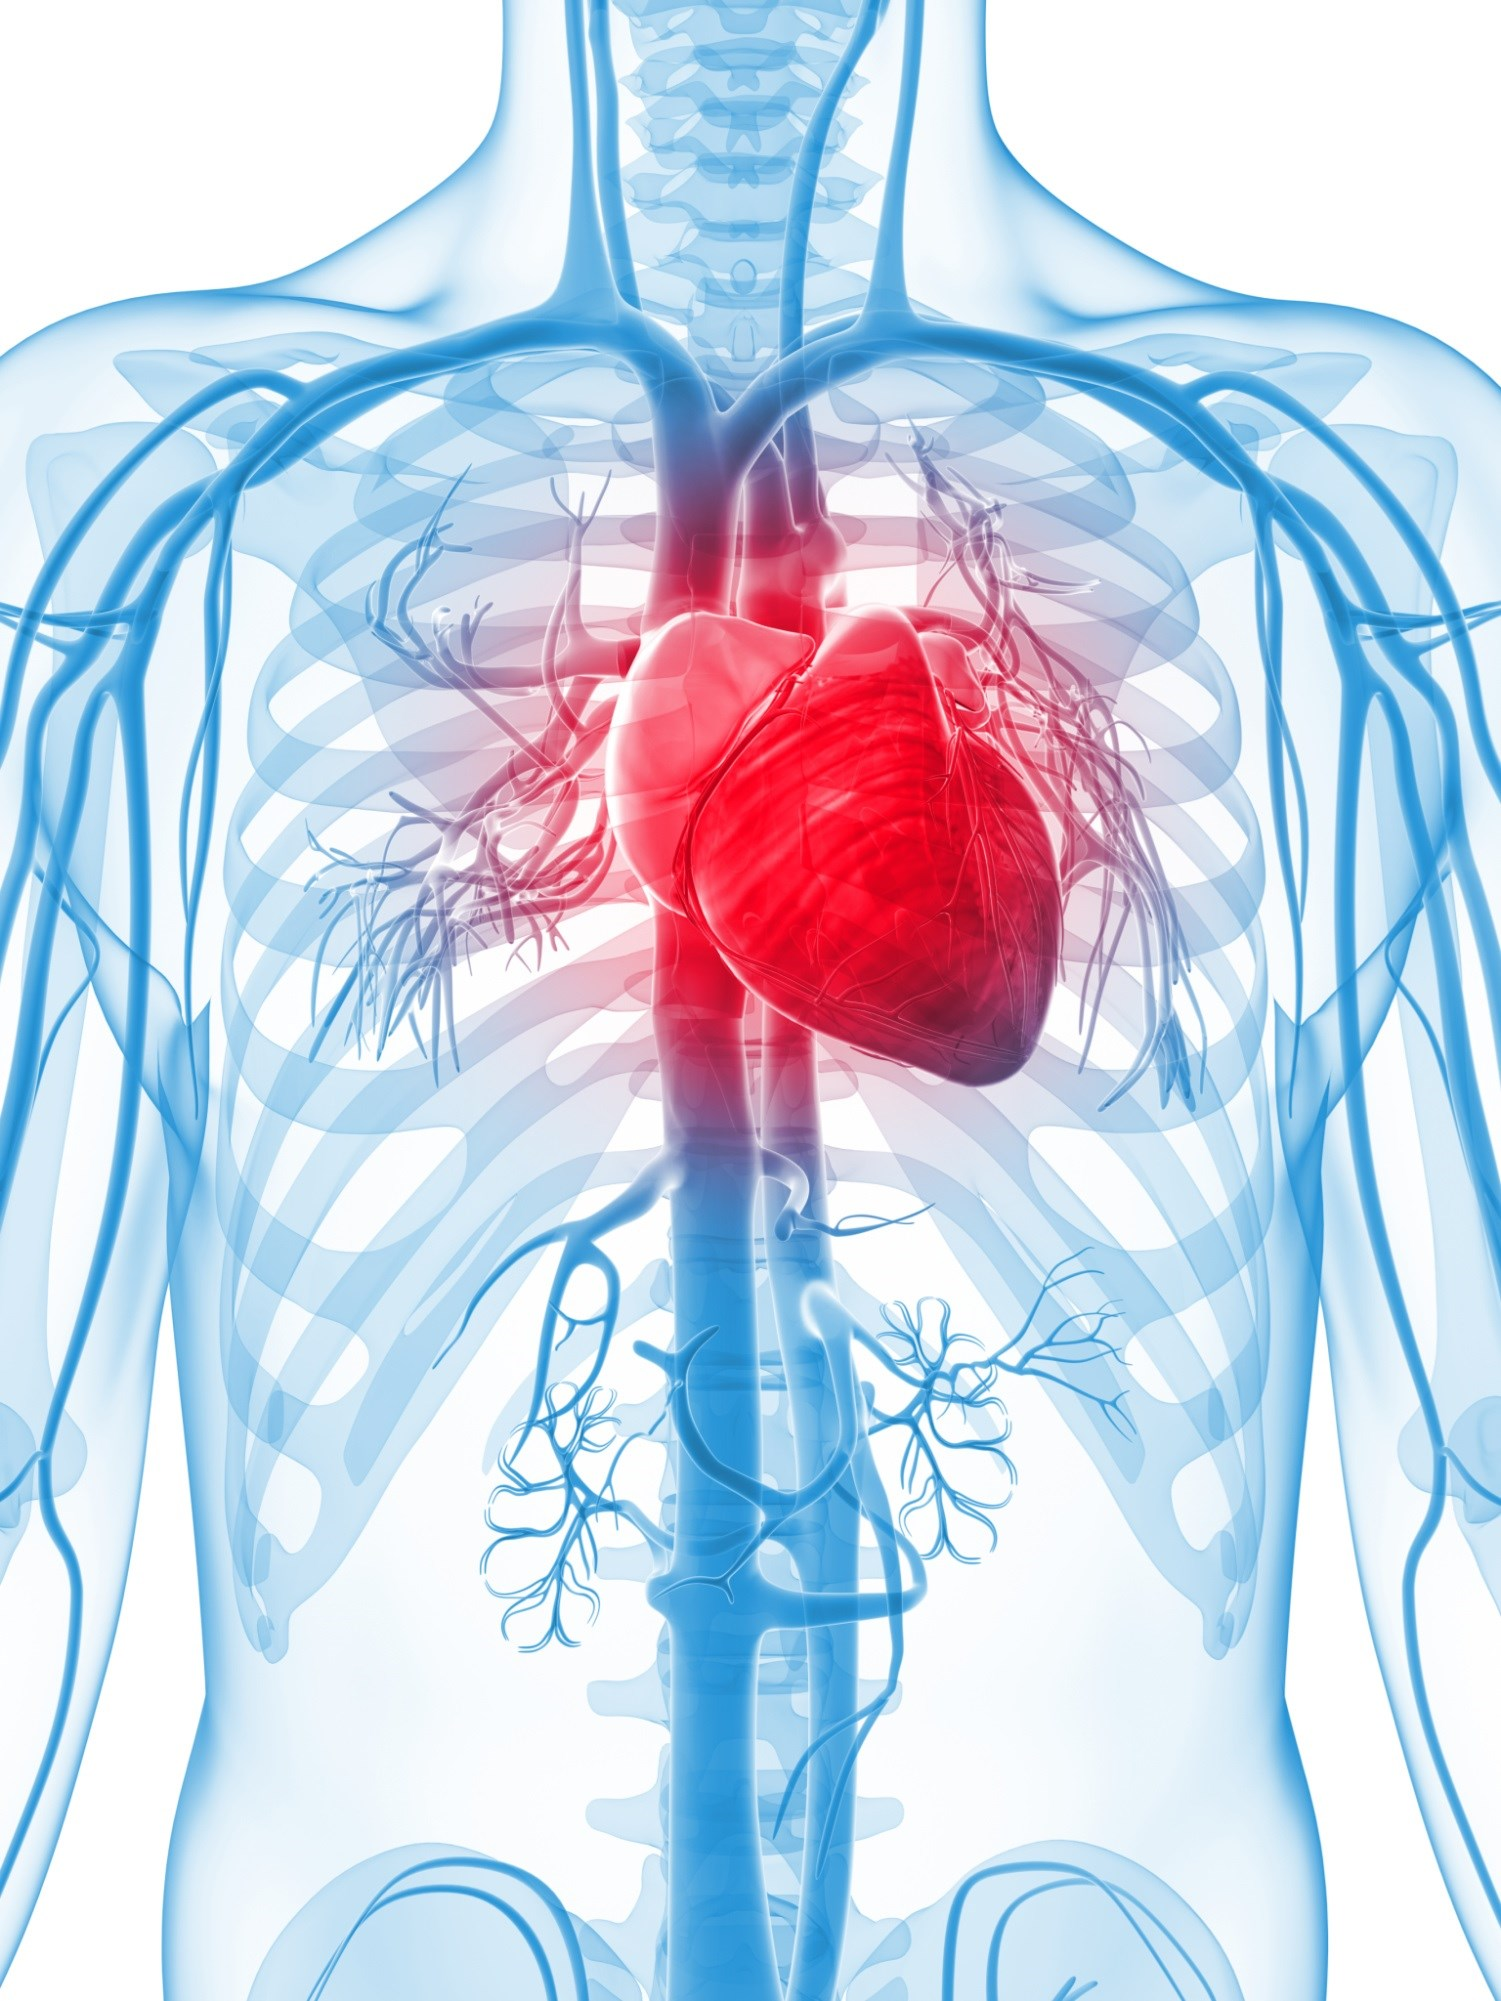 Increased Risk of Myocardial Infarction With Anti-TNF Biologics in RA